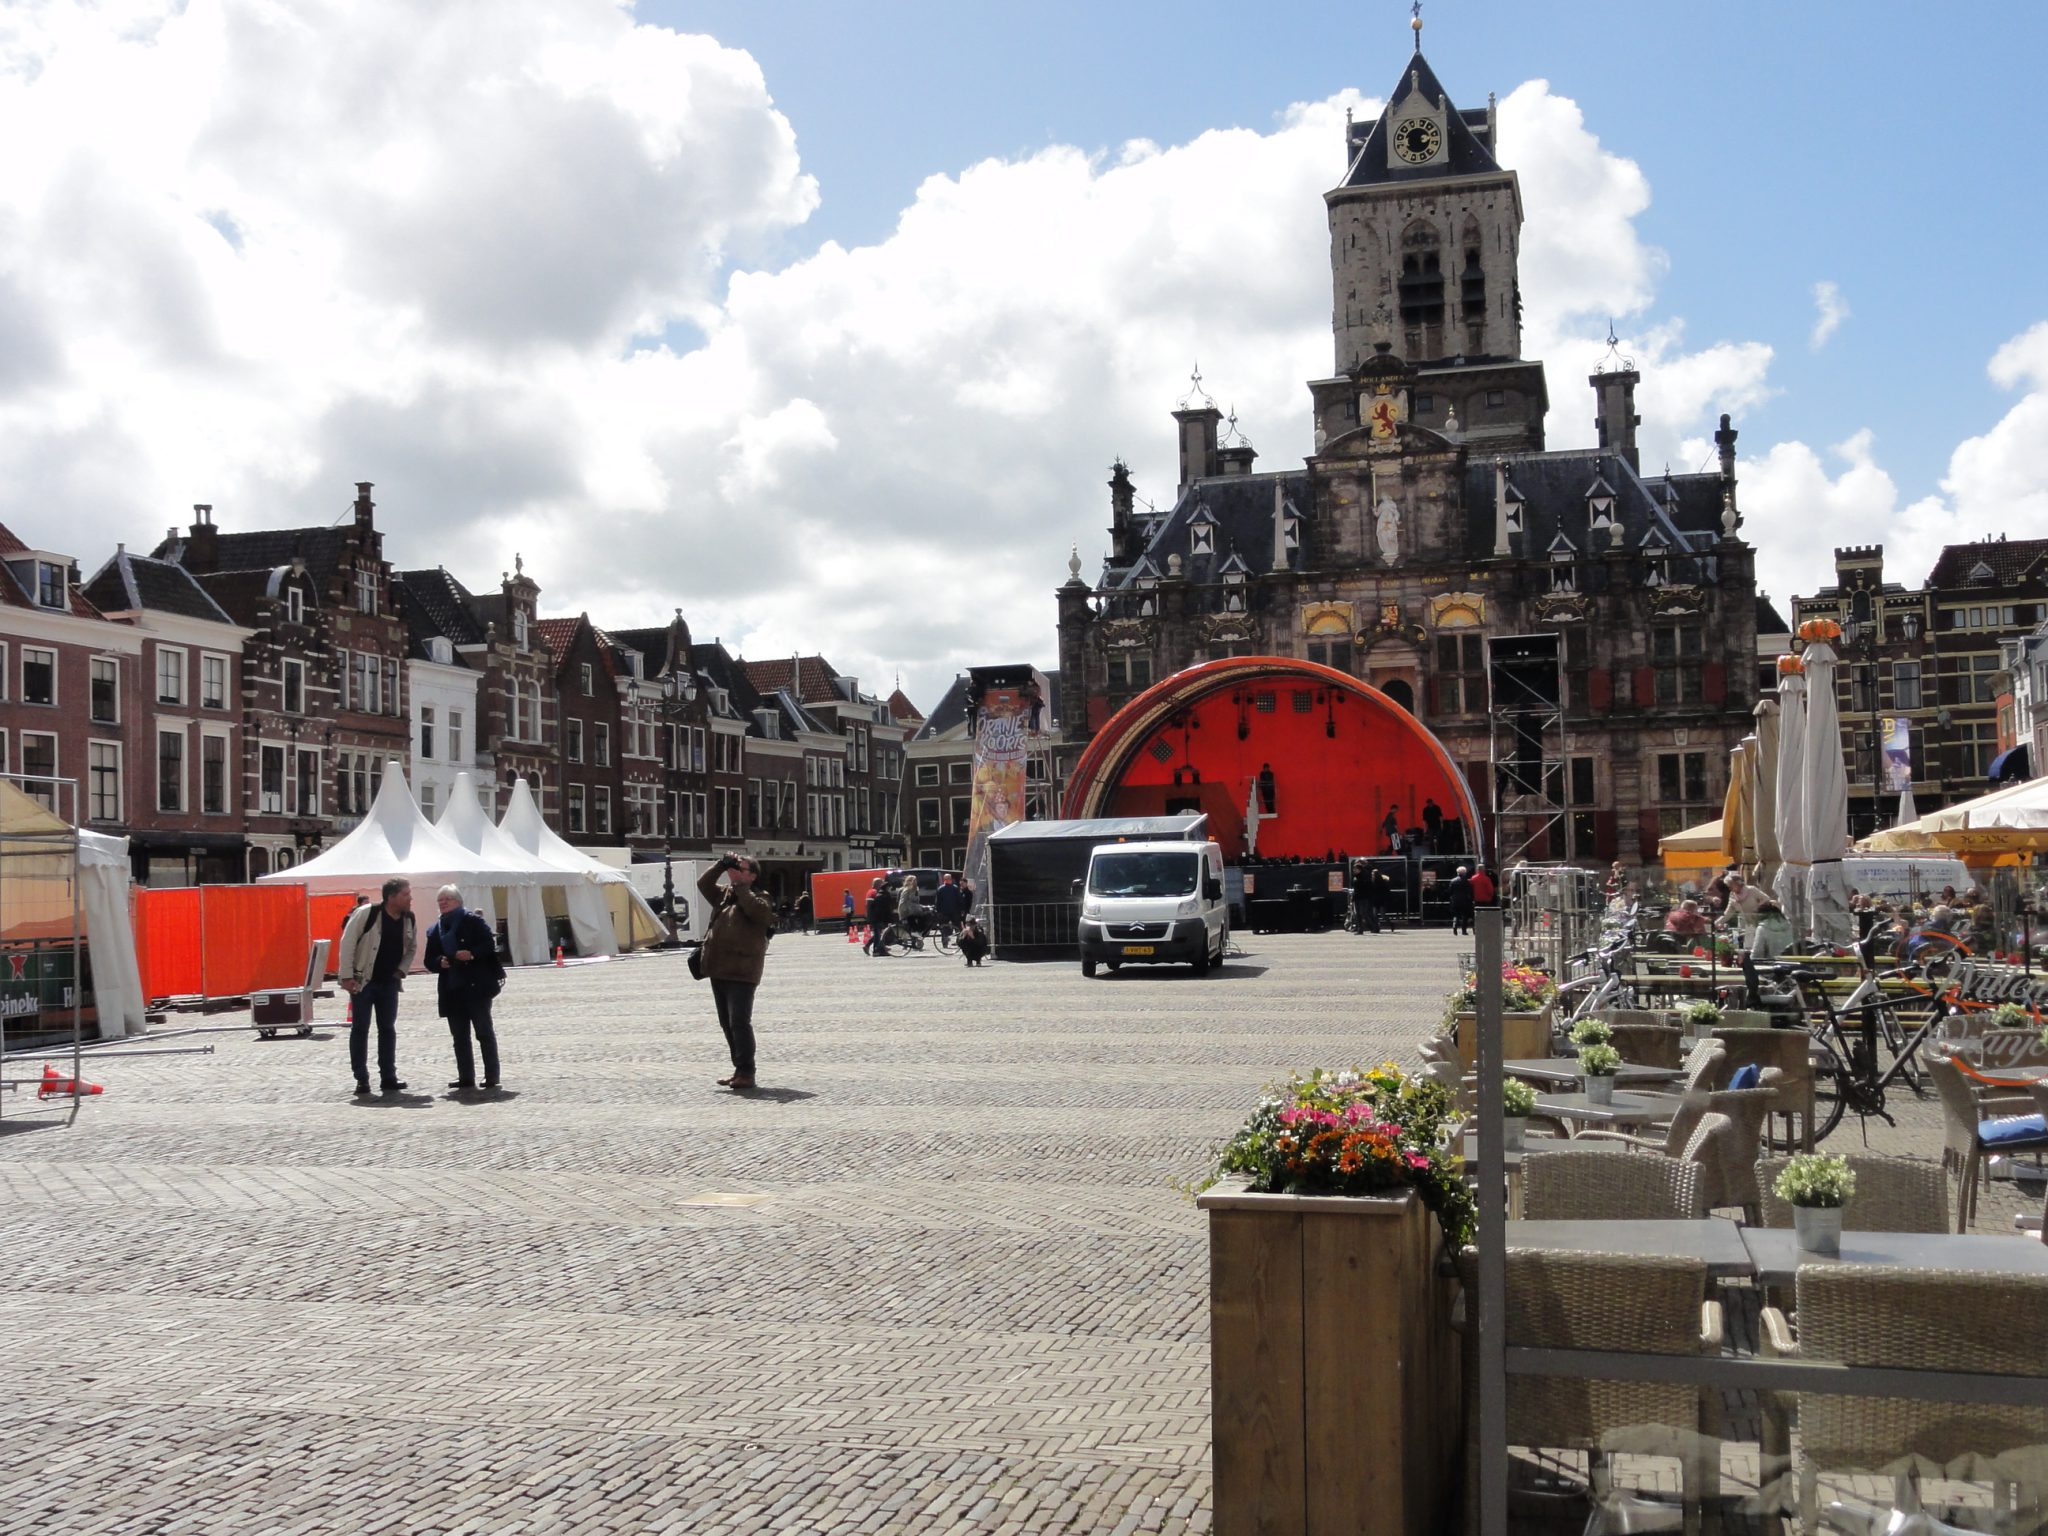 Market square Delft getting ready for kingsday